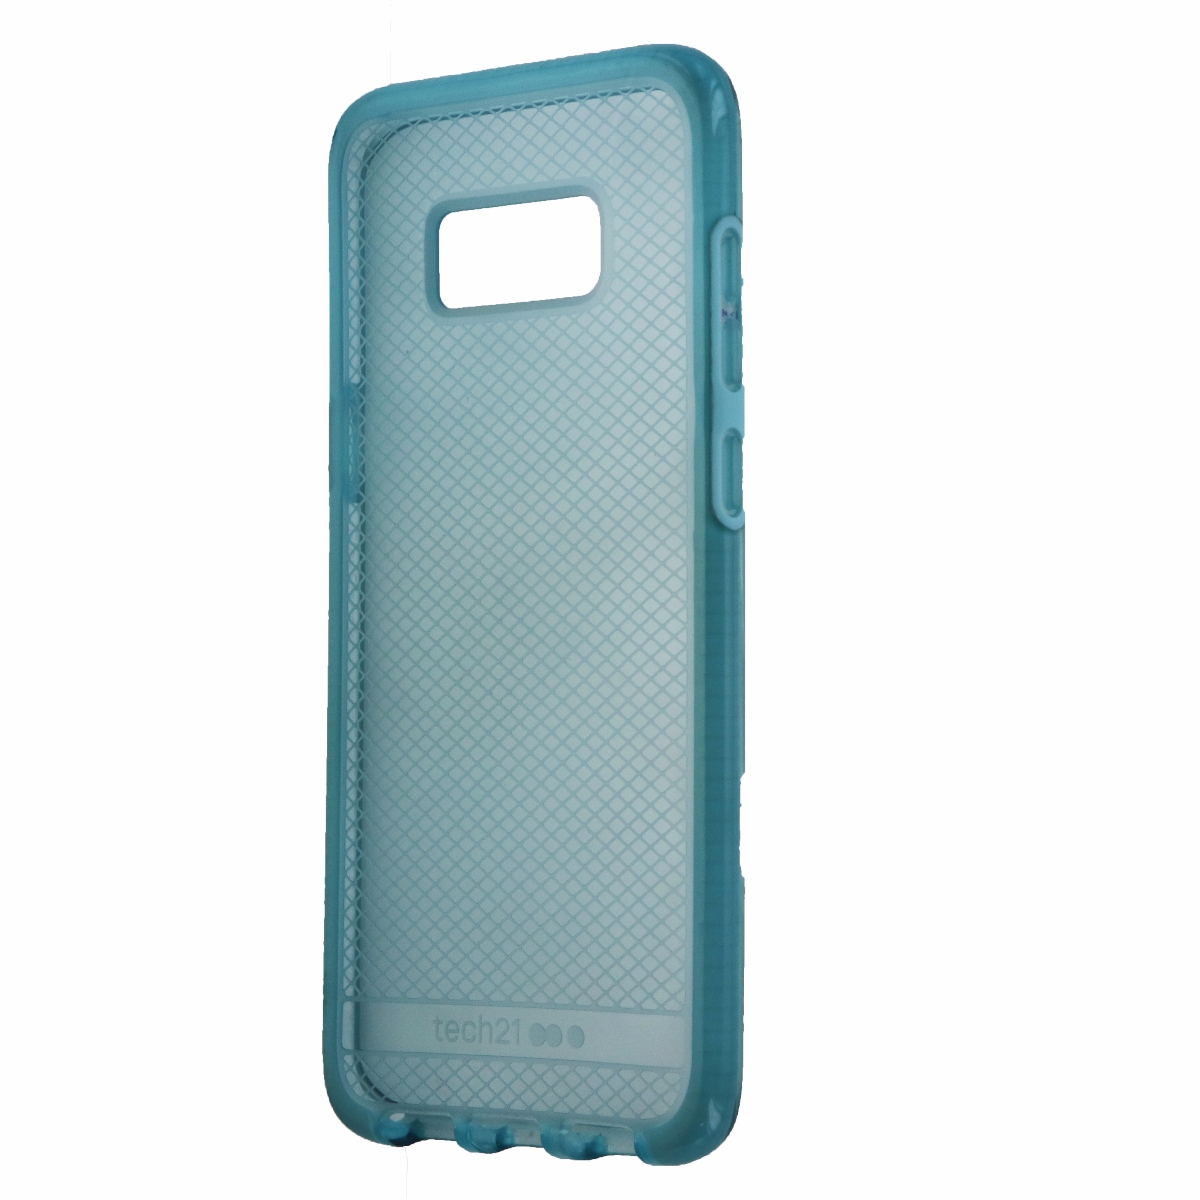 Tech21 Evo Check Series Case for Samsung Galaxy S8+ (Plus) - Light Blue/White